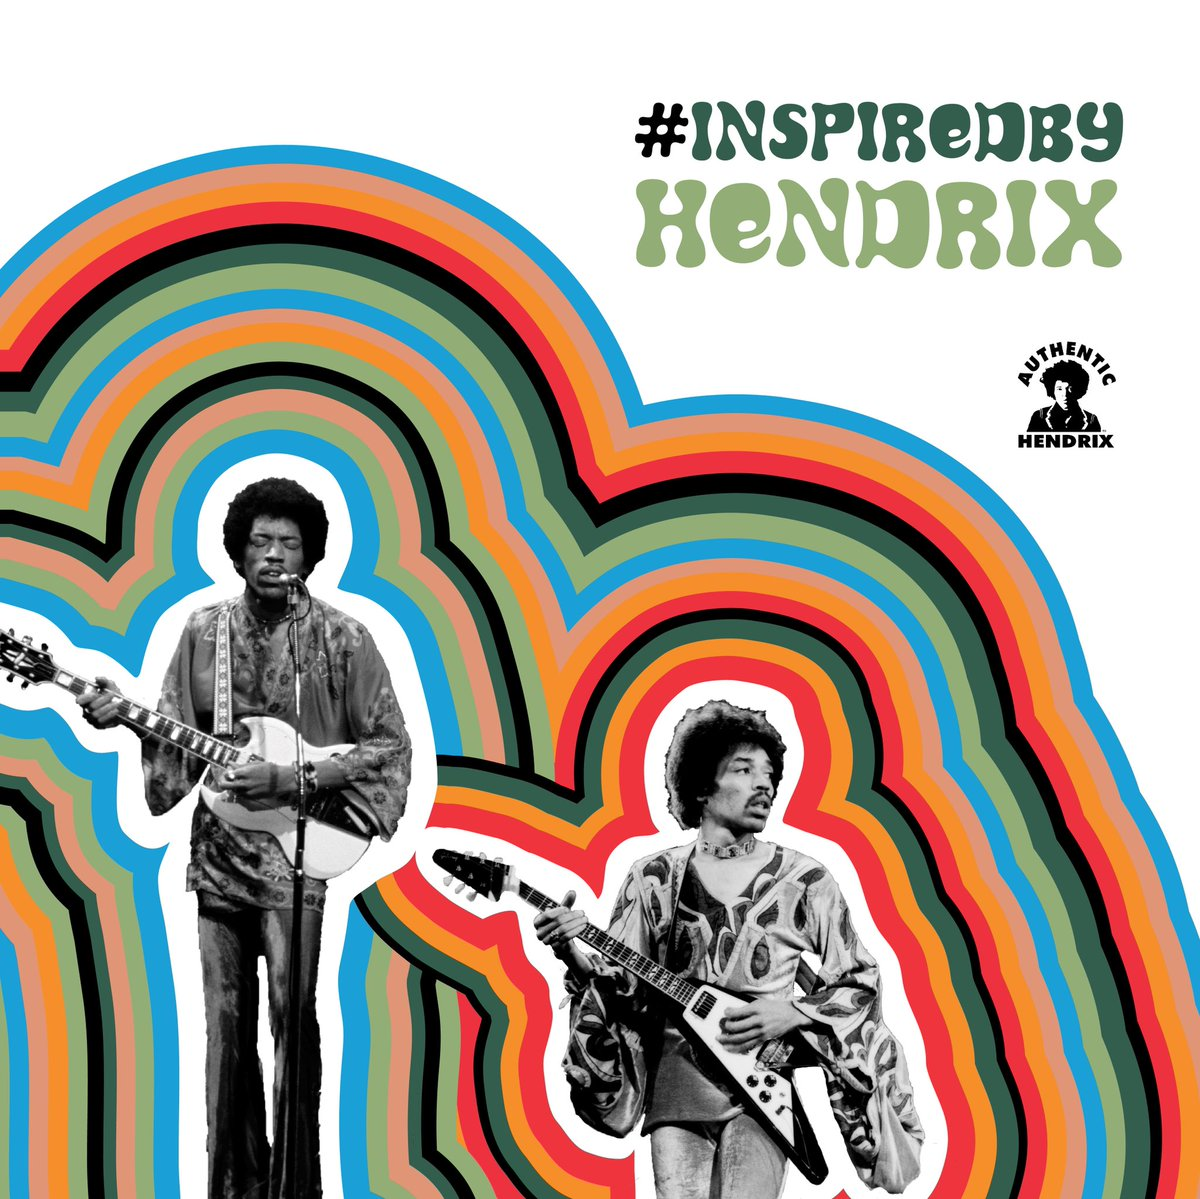 How are you #InspiredByHendrix? Share your favorite @JimiHendrix lick, a story of how Jimi influenced you, or recreate your favorite Hendrix moment (fashion or performance). Tag us on Instagram and you could find yourself center stage in our story this Week!